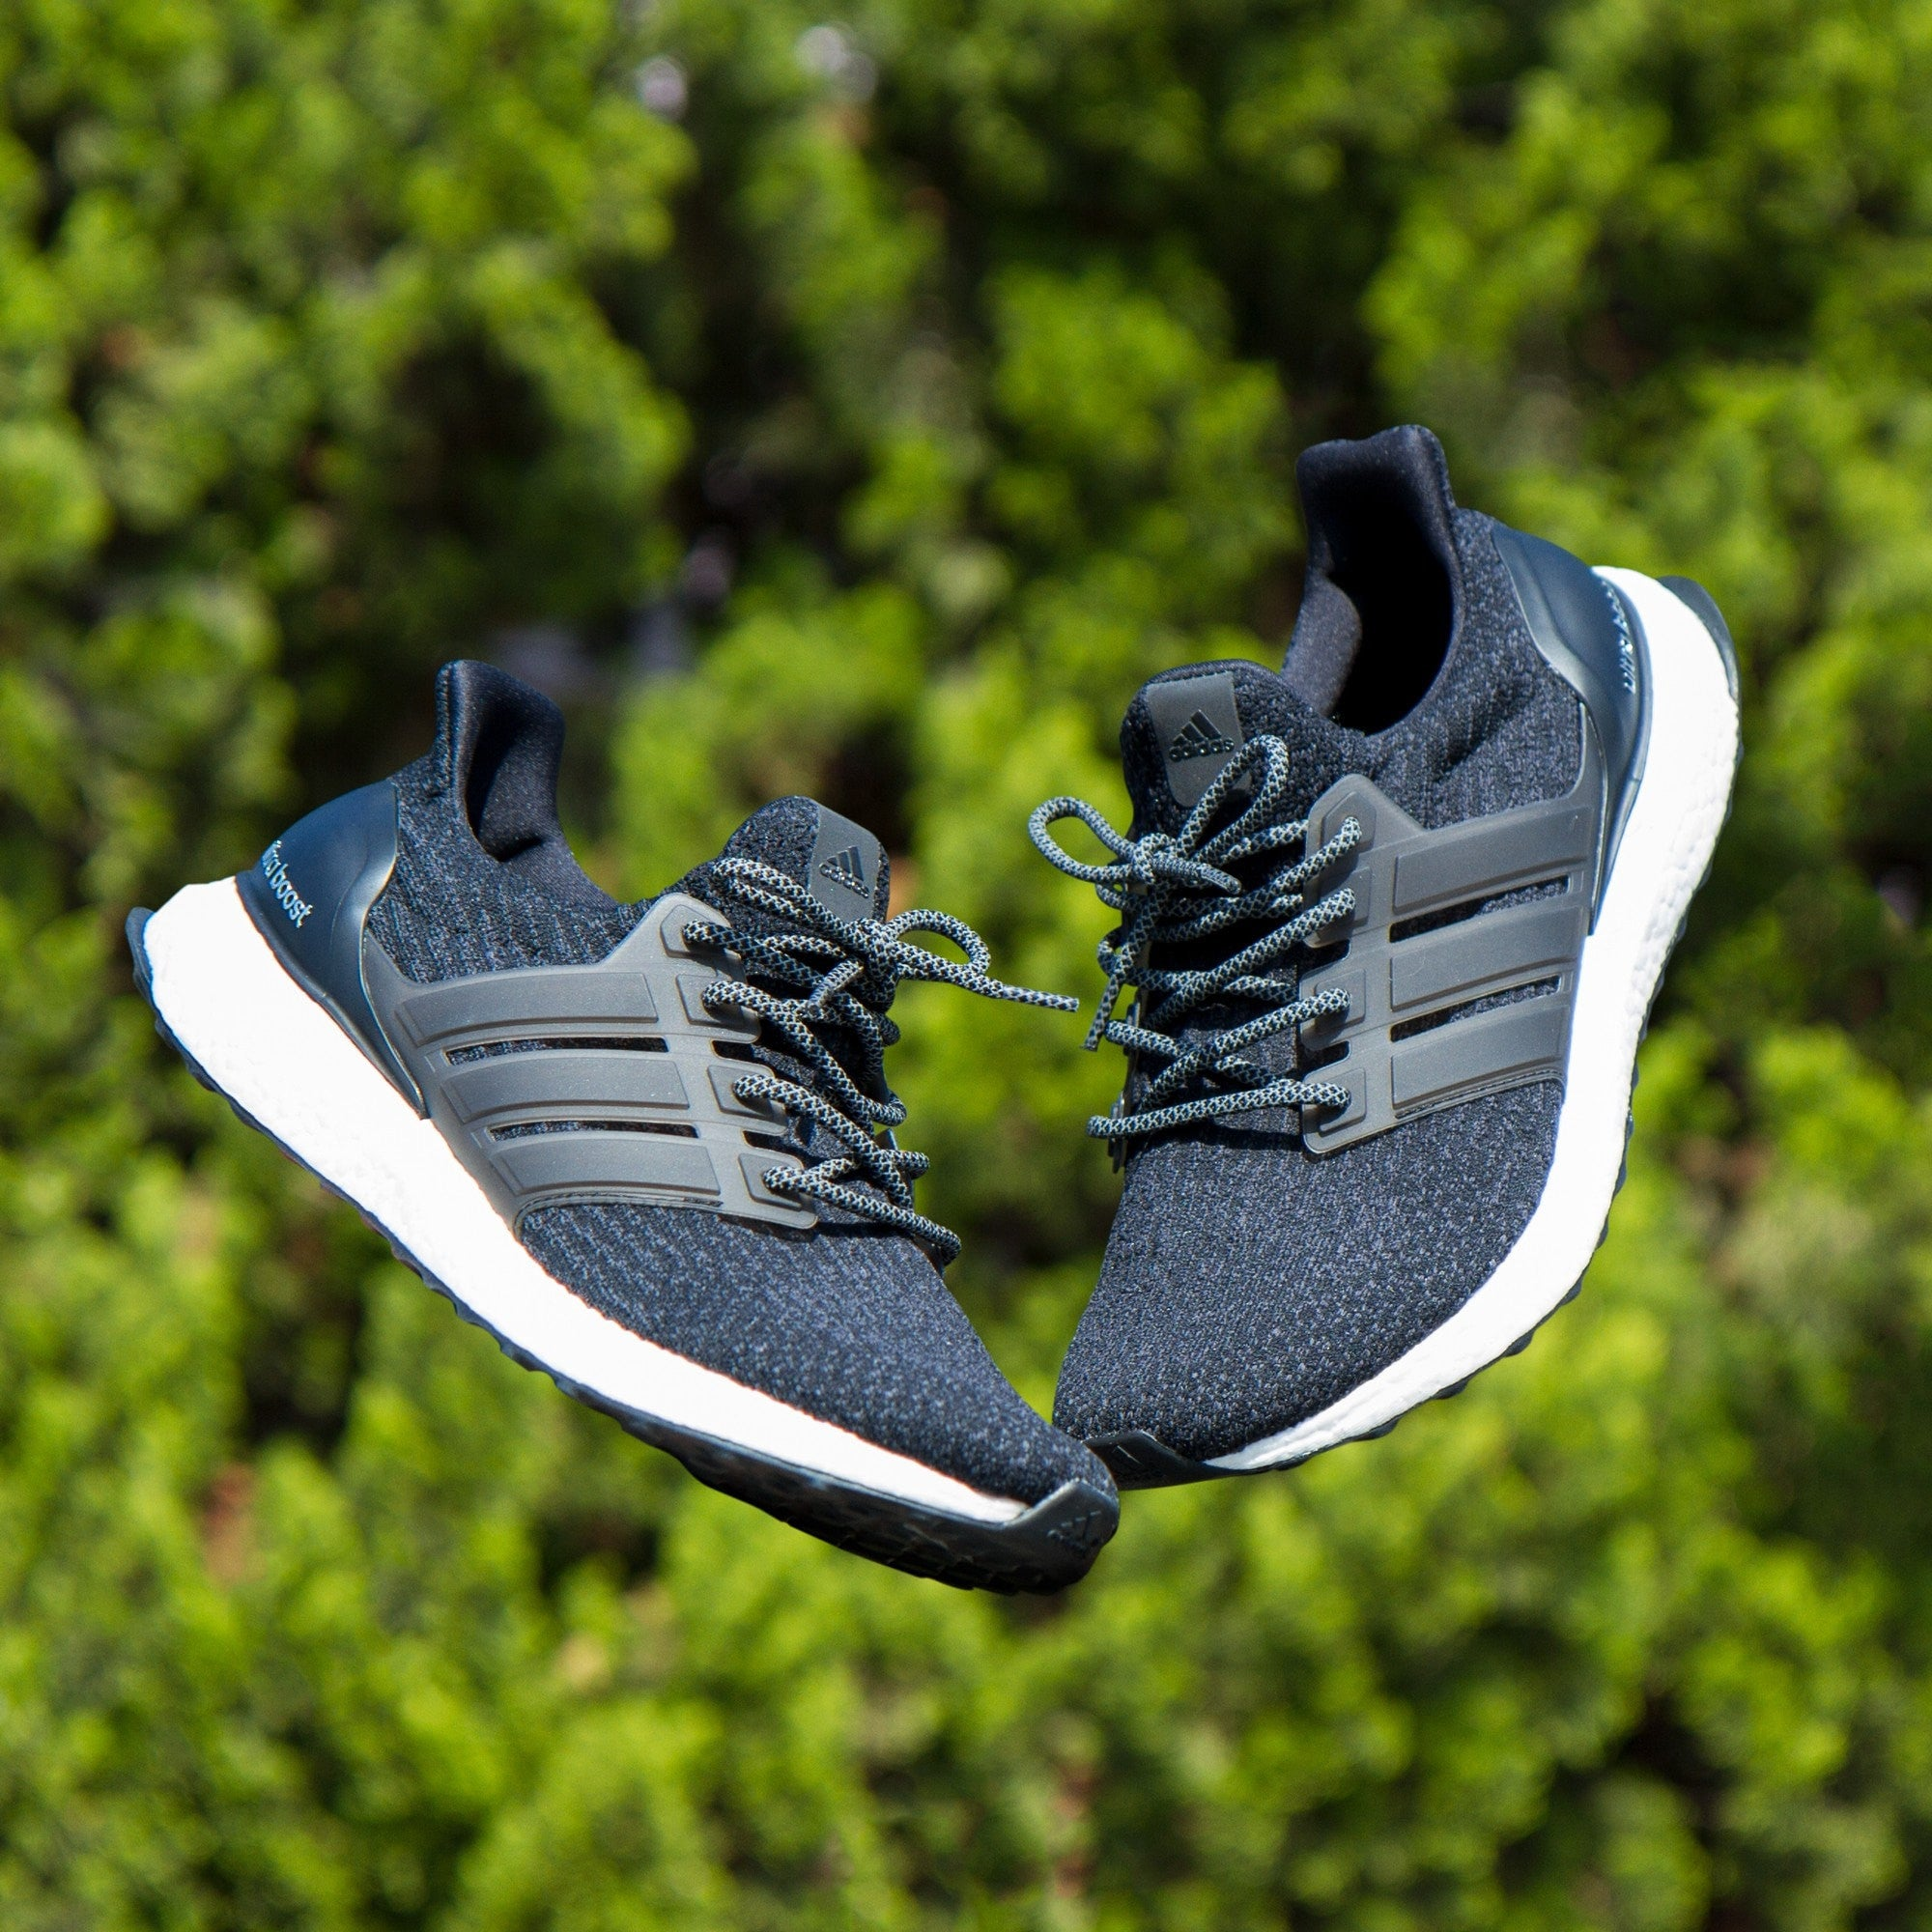 66dca3b1249aa Lace Lab Black 3M Laces on Adidas Ultra Boost - 41